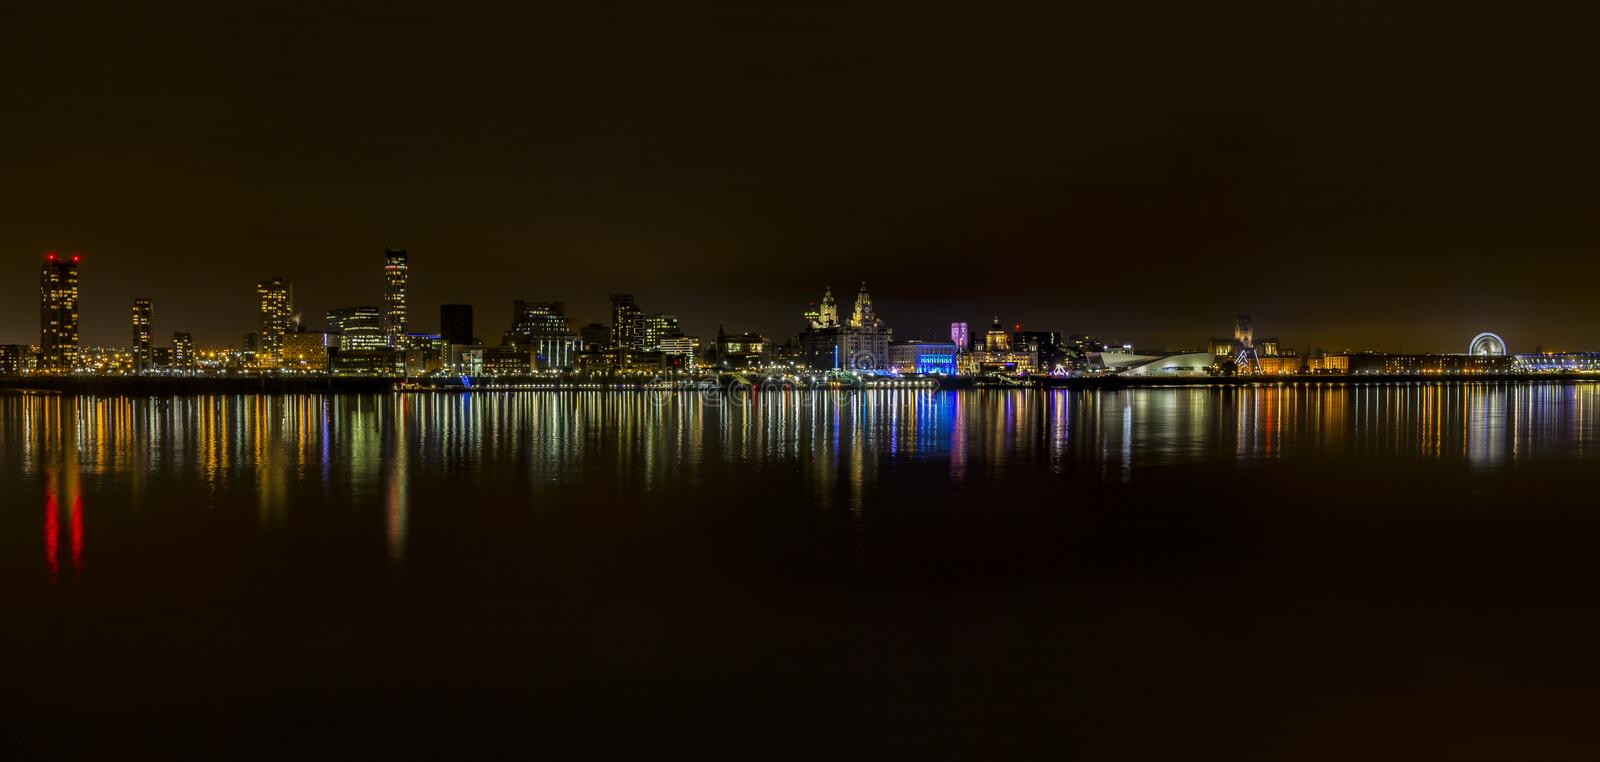 Liverpool Waterfront stock image